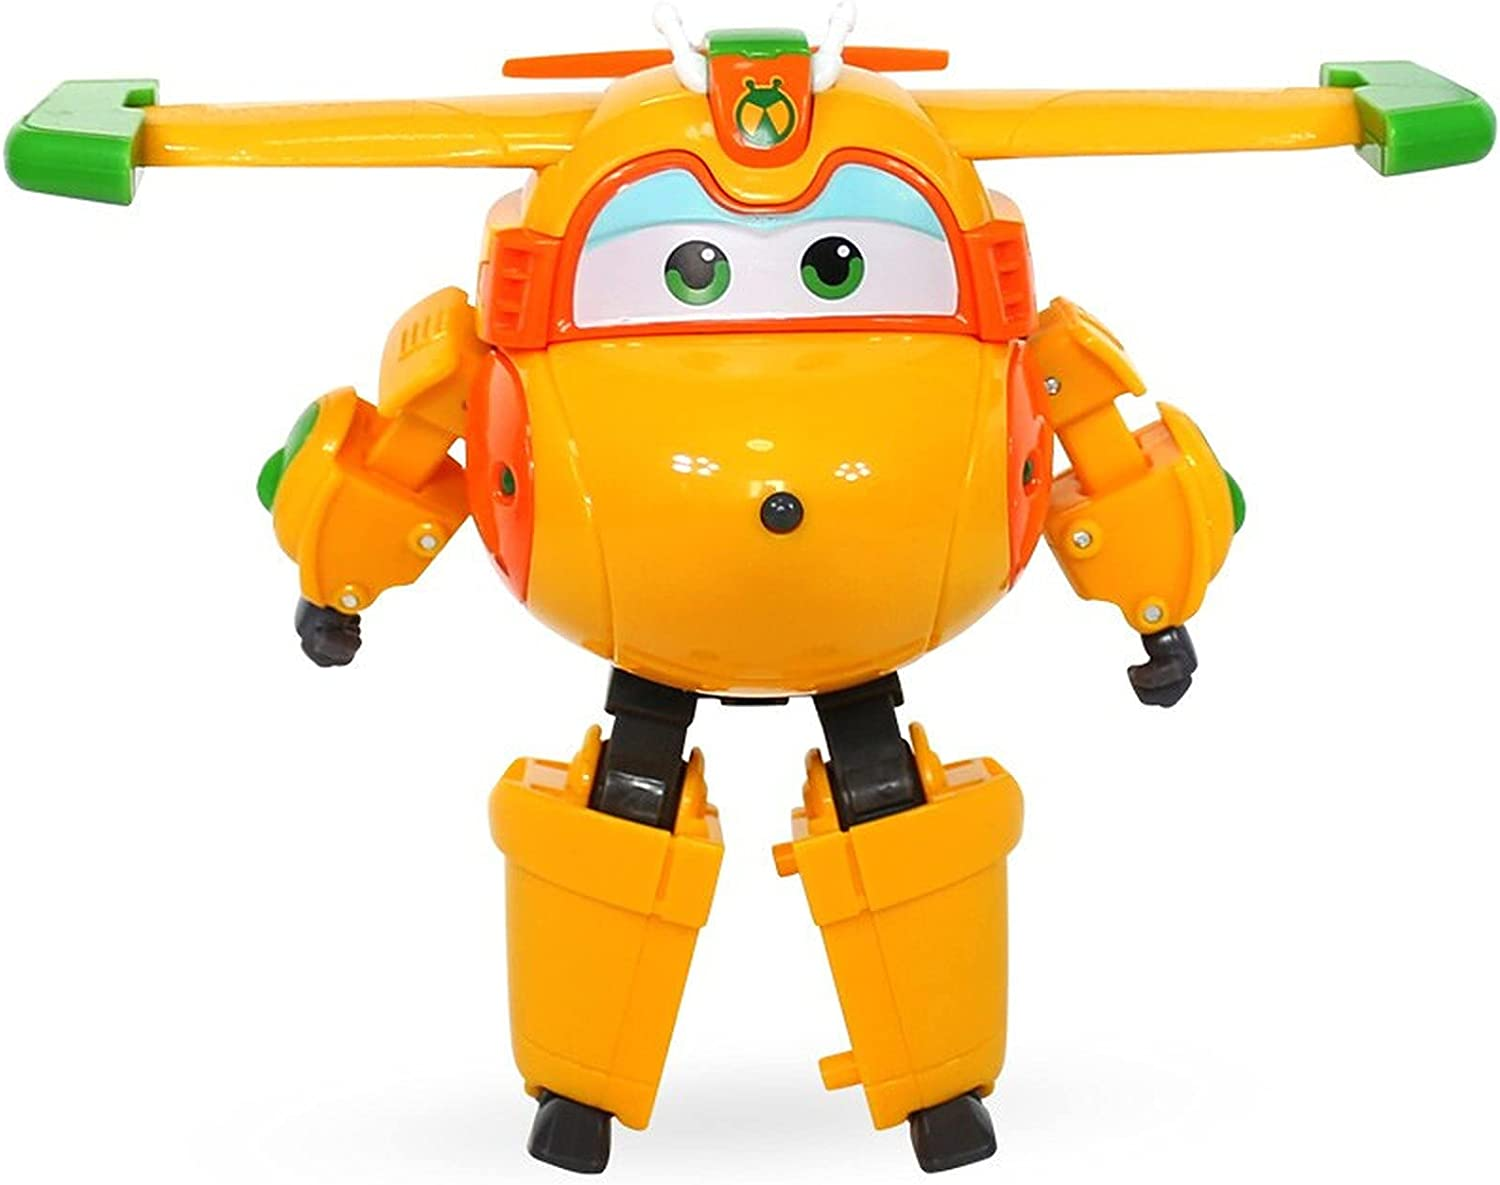 Transforming Toy Figure Ro Max 89% OFF 5